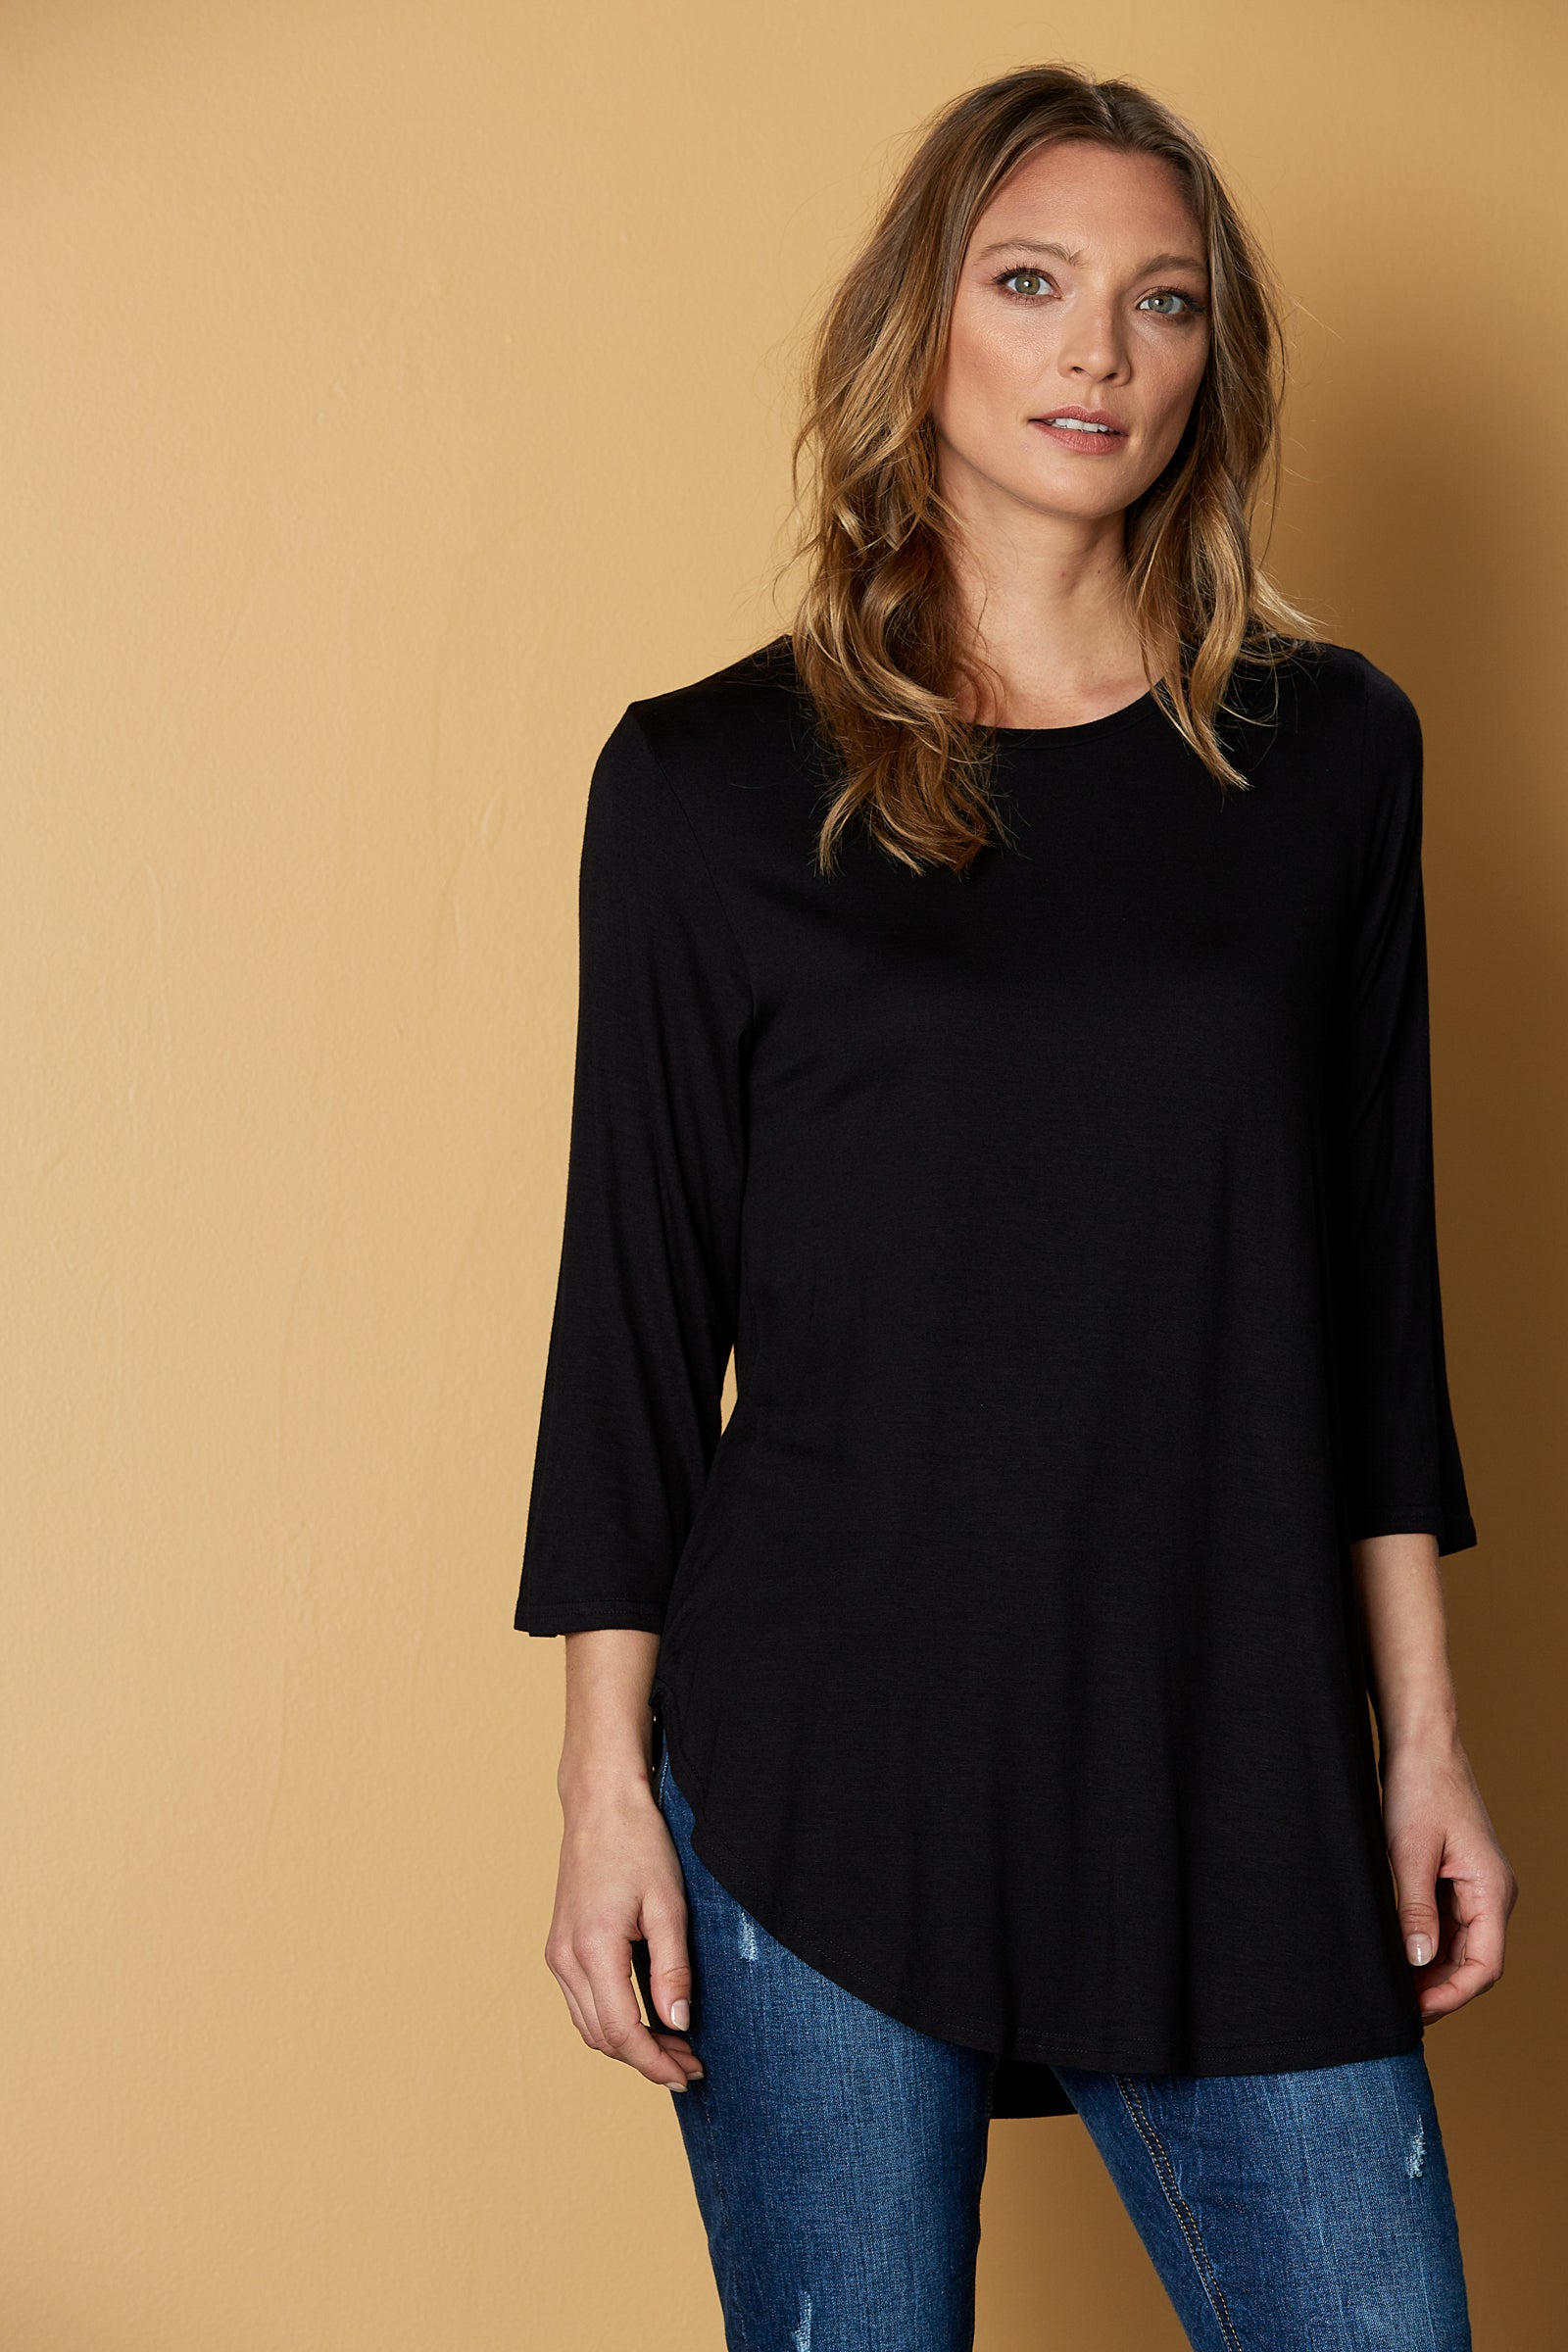 Muse Tshirt - Black - eb&ive Clothing - Top Tshirt L/S Relaxed